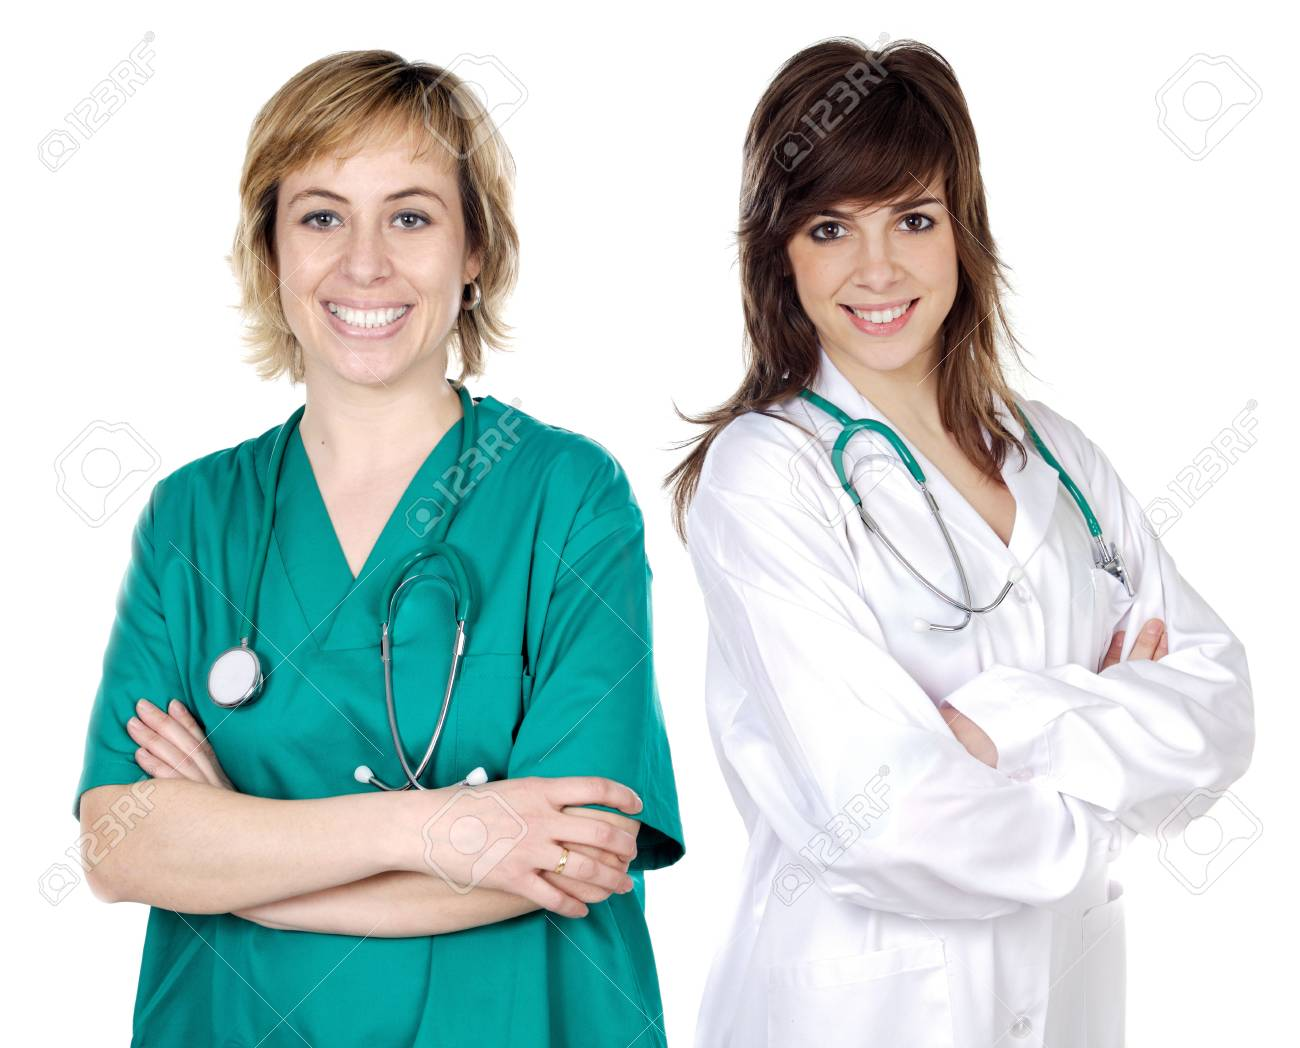 Two doctor women over a white background Stock Photo - 1171307